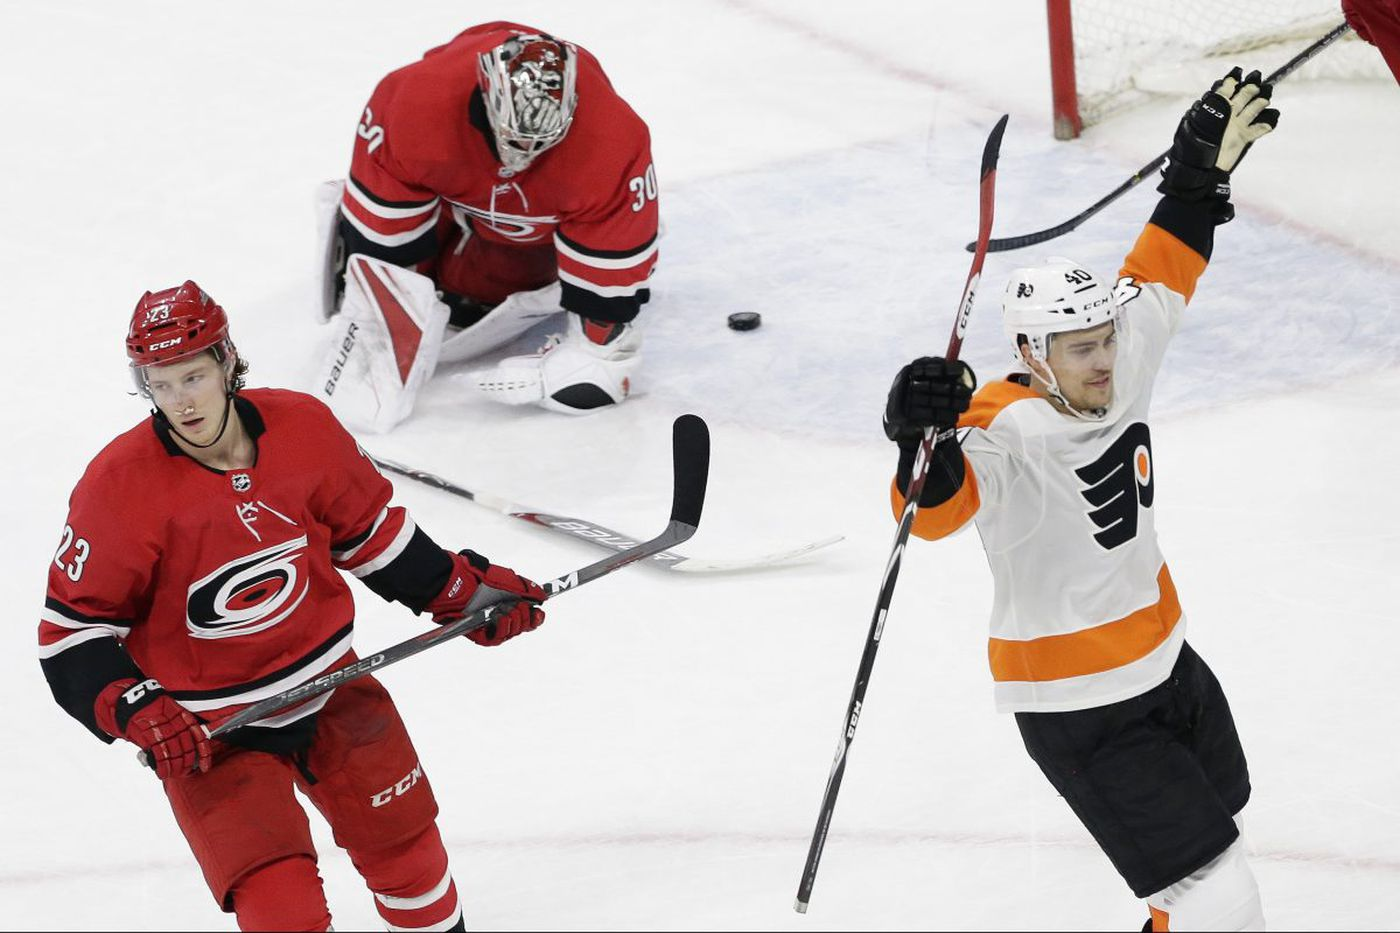 Flyers win on Jordan Weal's overtime goal